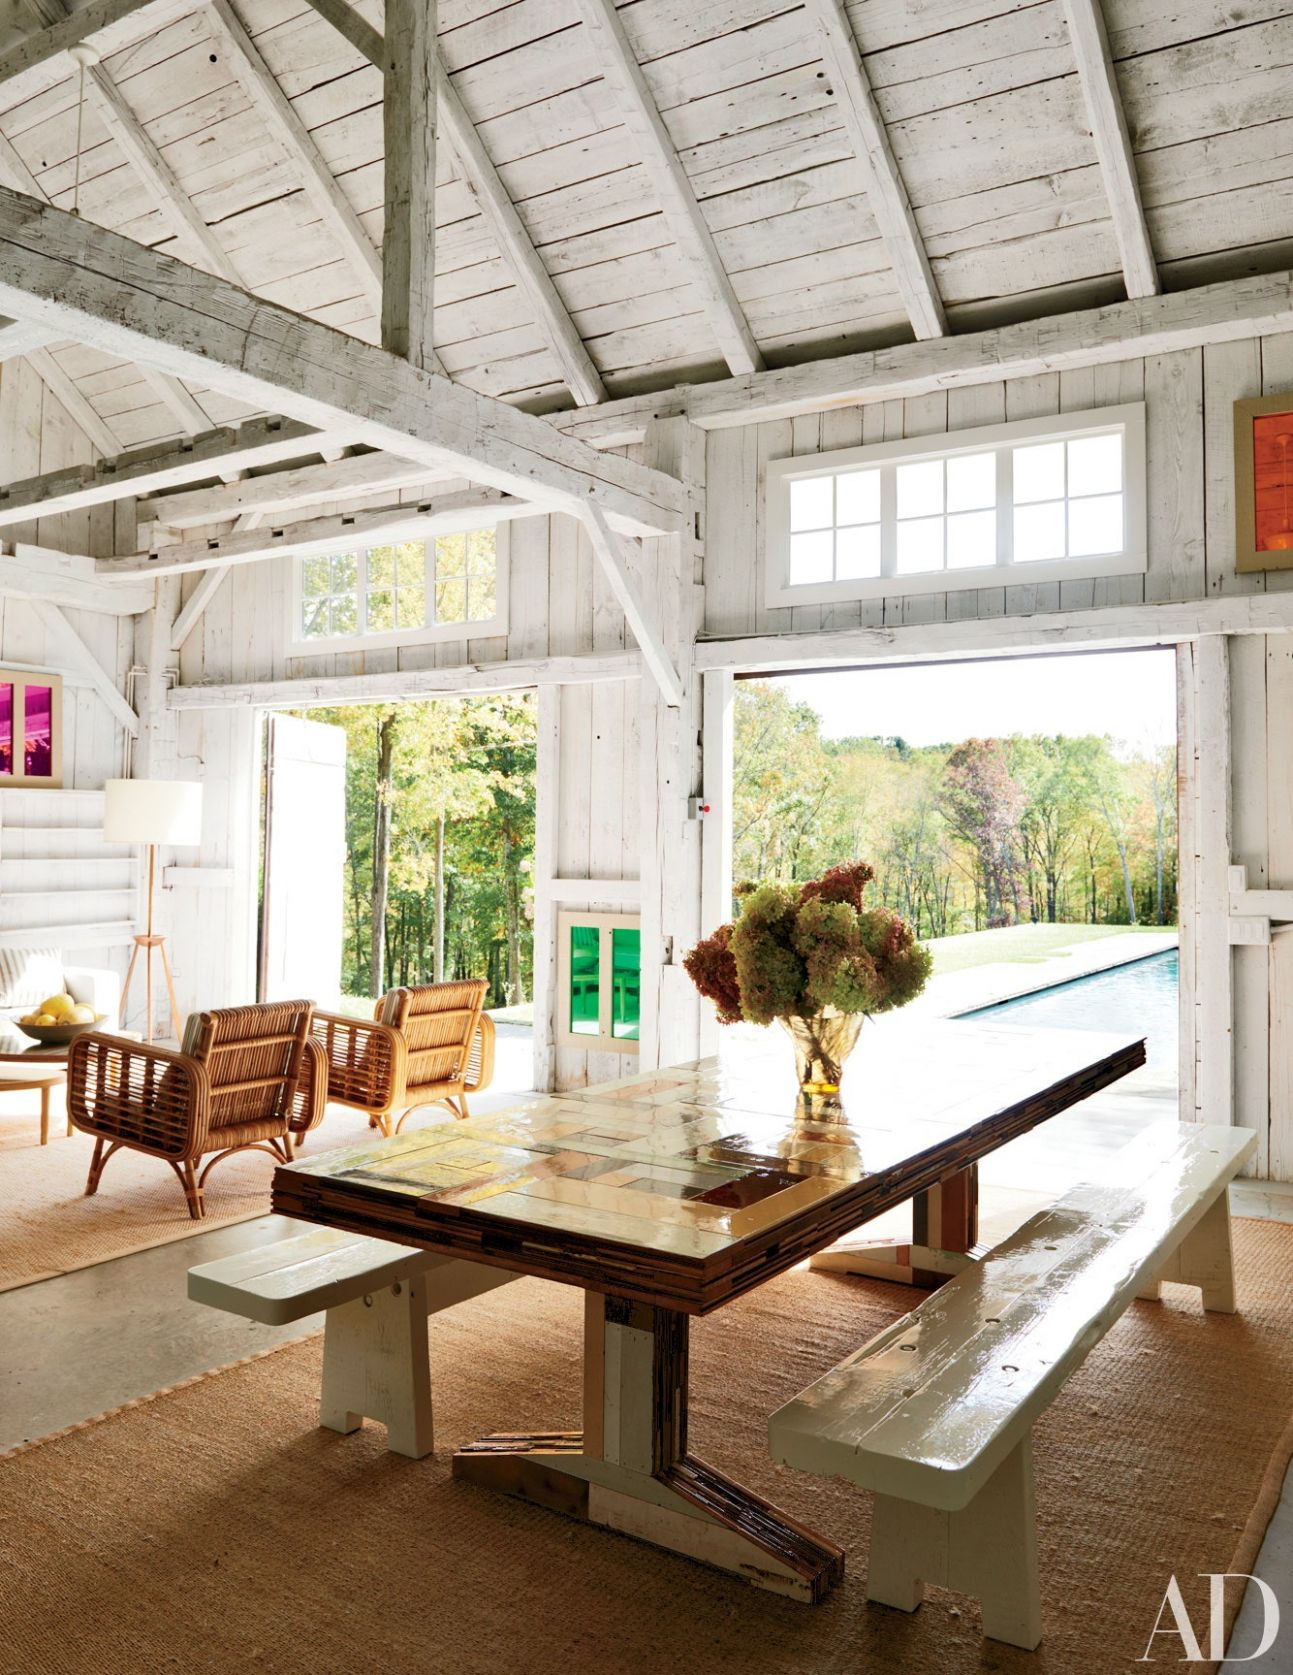 8 Poolhouse Ideas & Design Inspiration | Architectural Digest